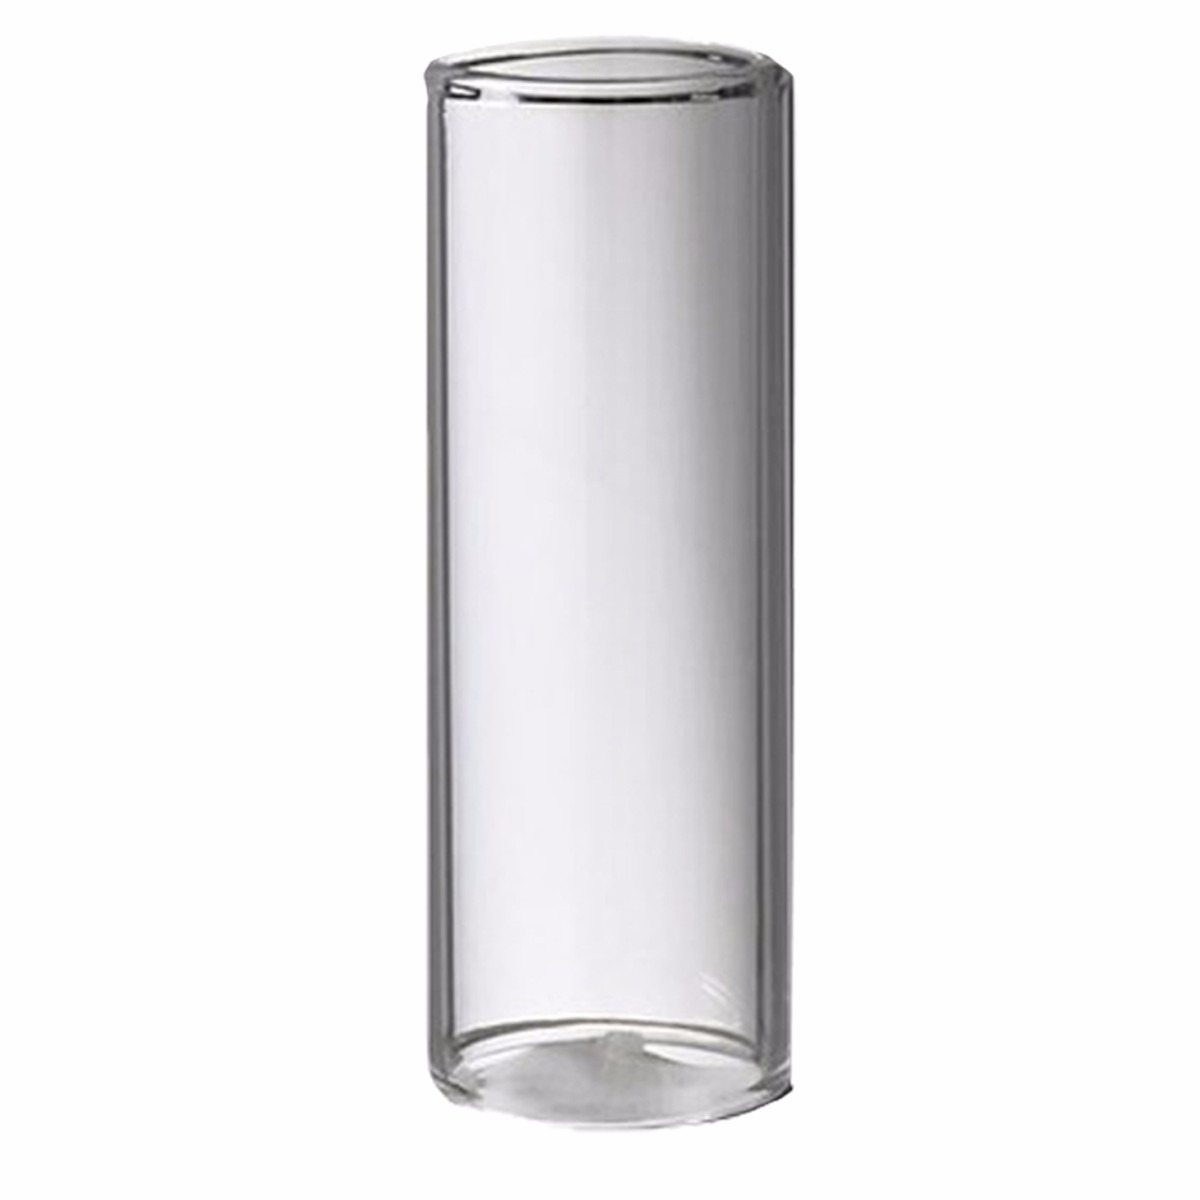 FENDER GLASS SLIDE 2 STD LARGE